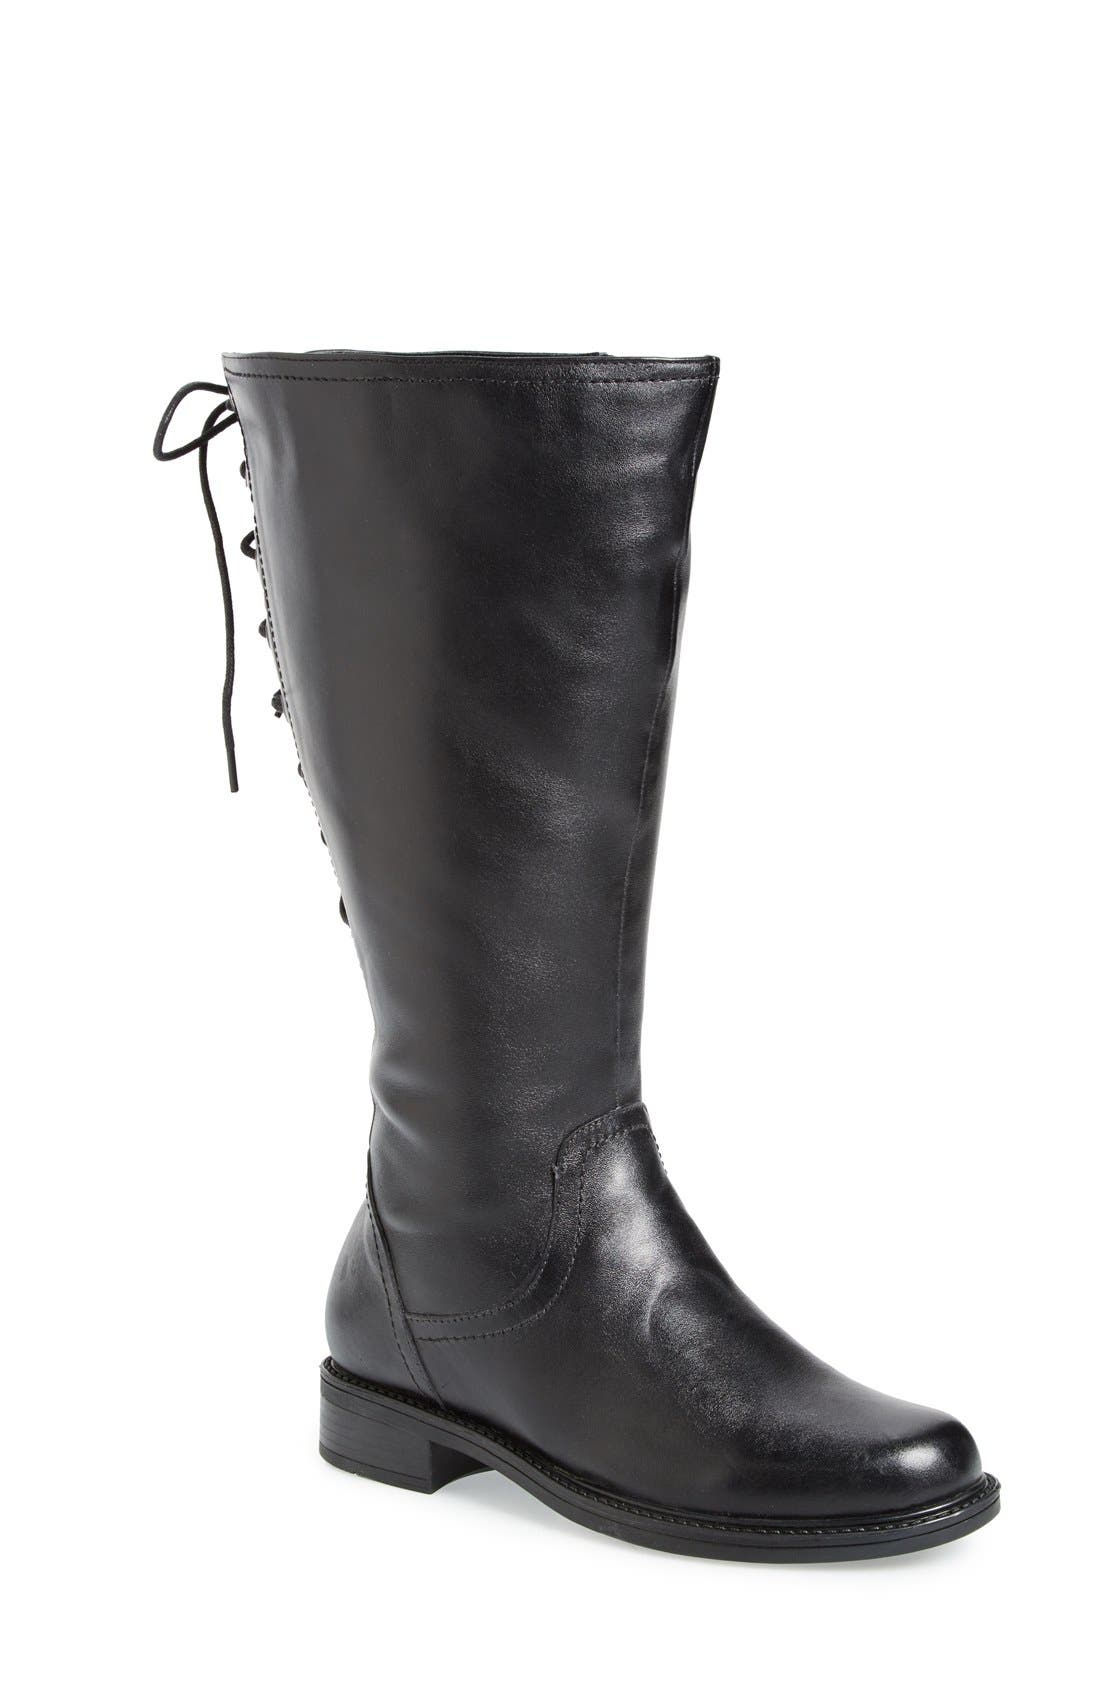 David Tate 'Zoe' Knee High Boot (Women) (Extra Wide Calf)